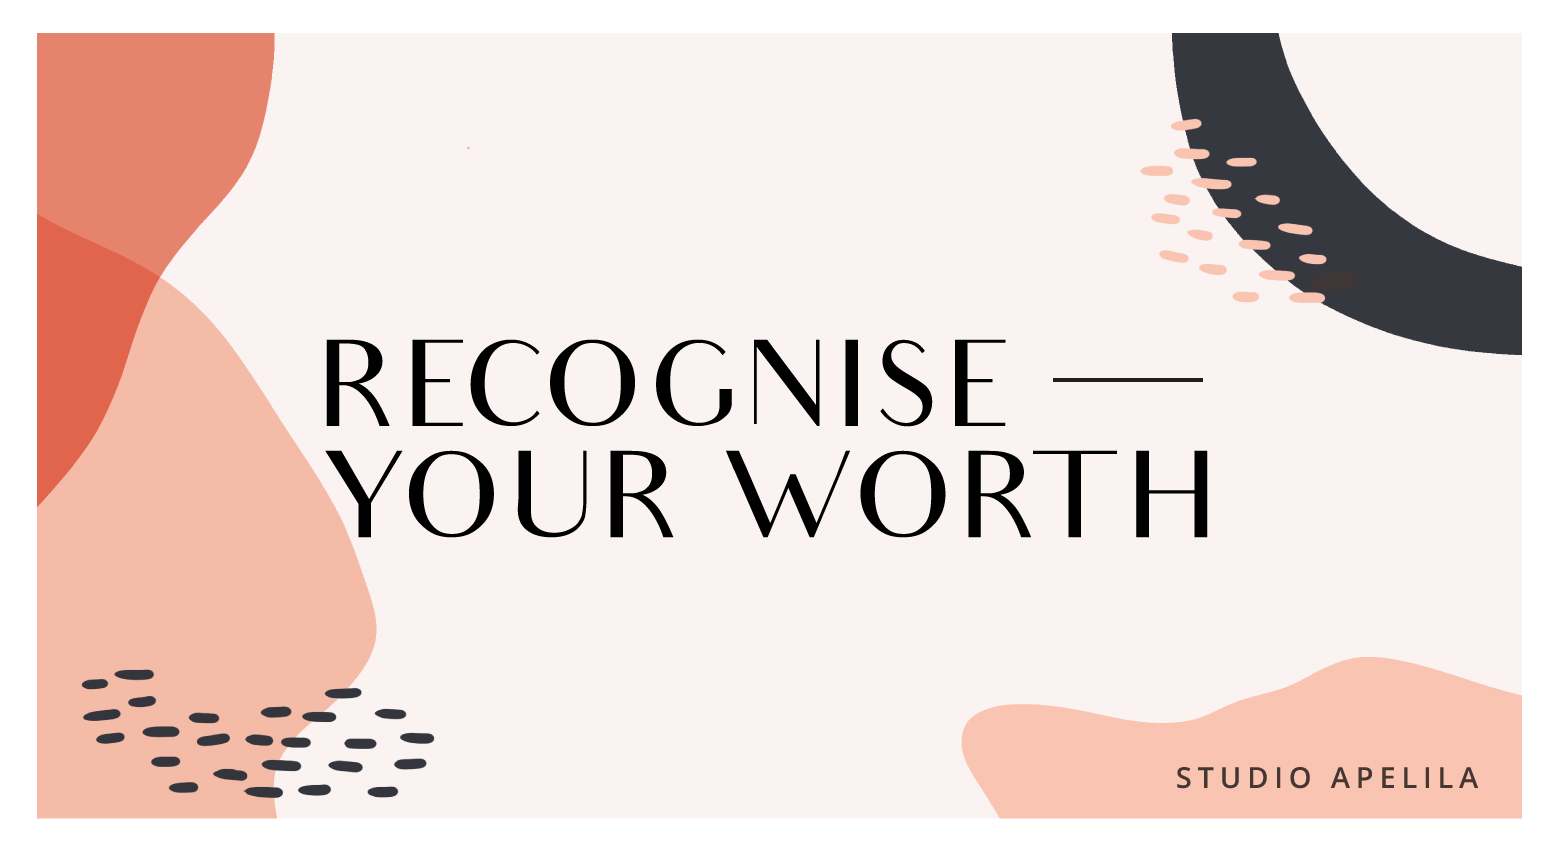 recognise-your-worth.jpg